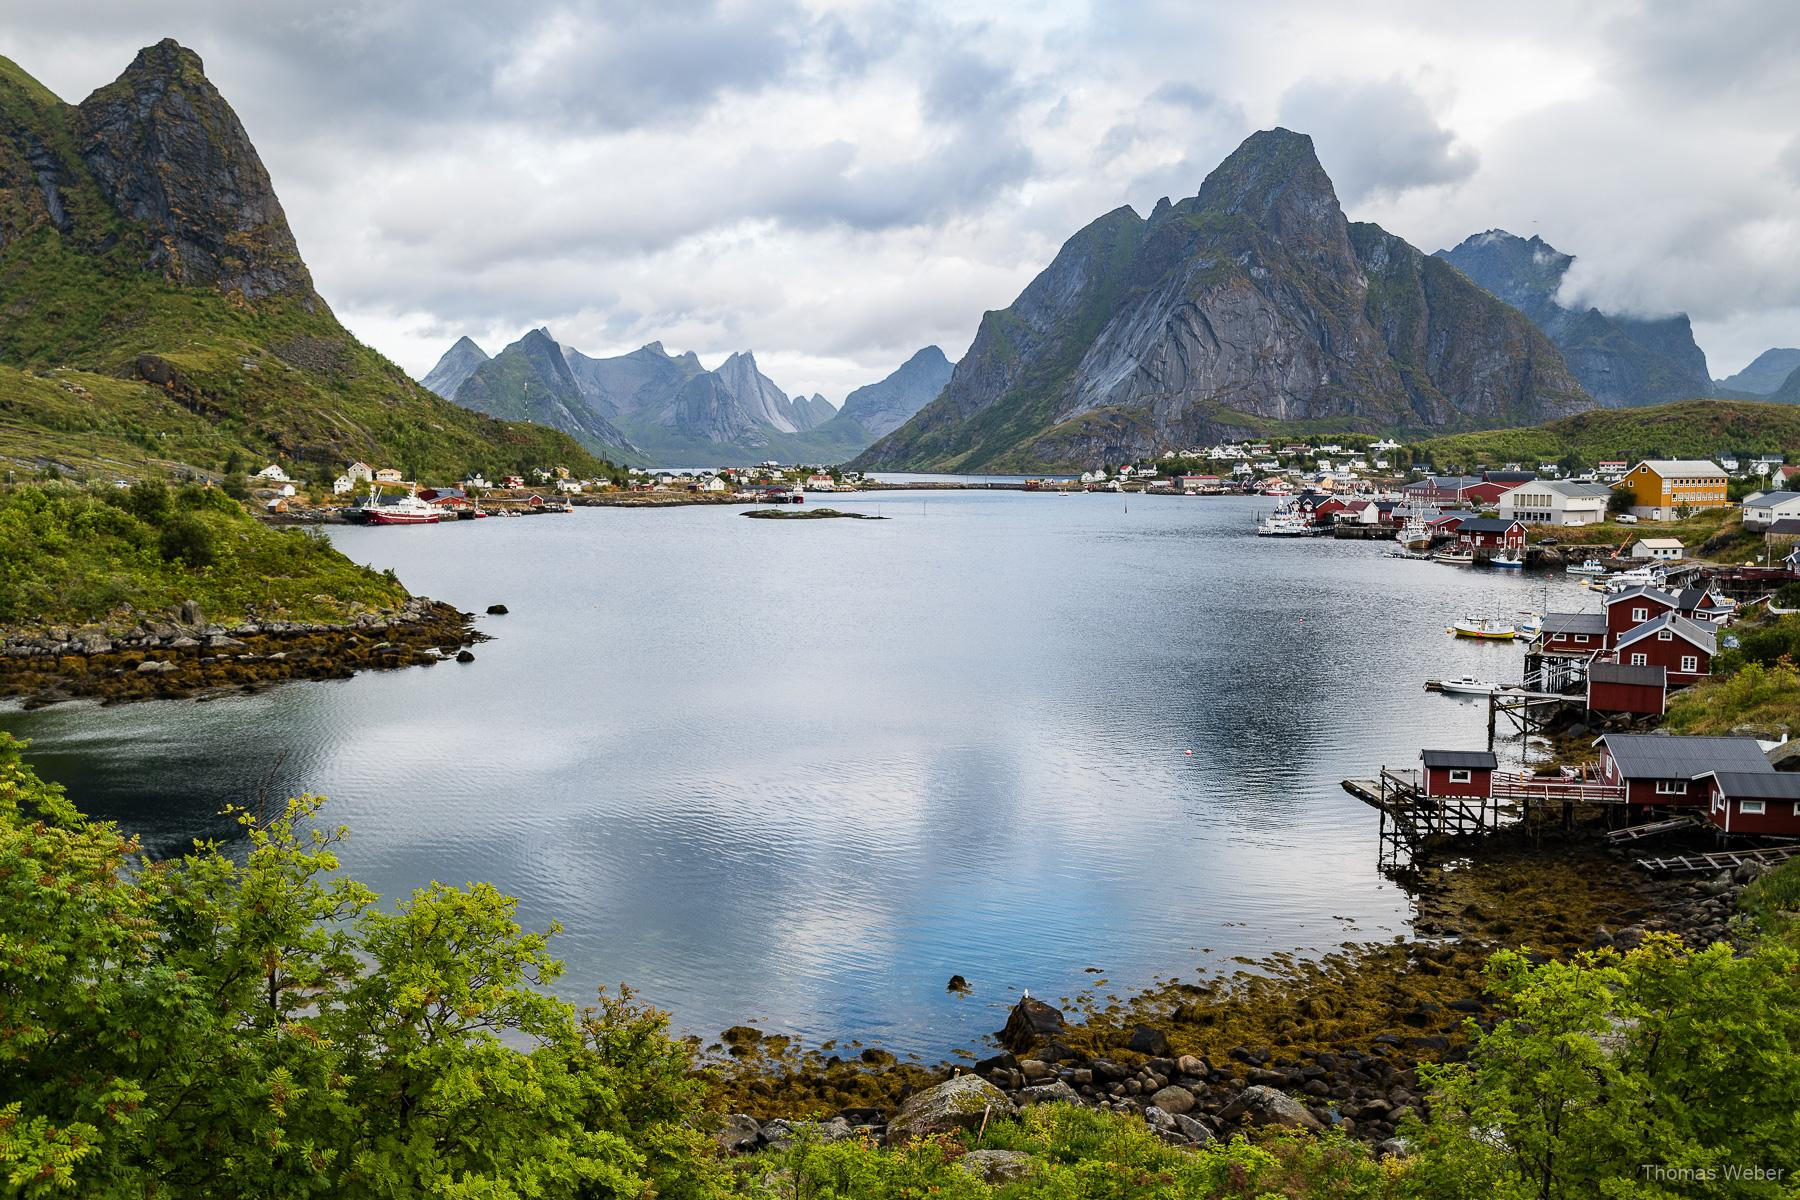 Roadtrip auf die Lofoten in Norwegen, Thomas Weber, Fotograf Oldenburg